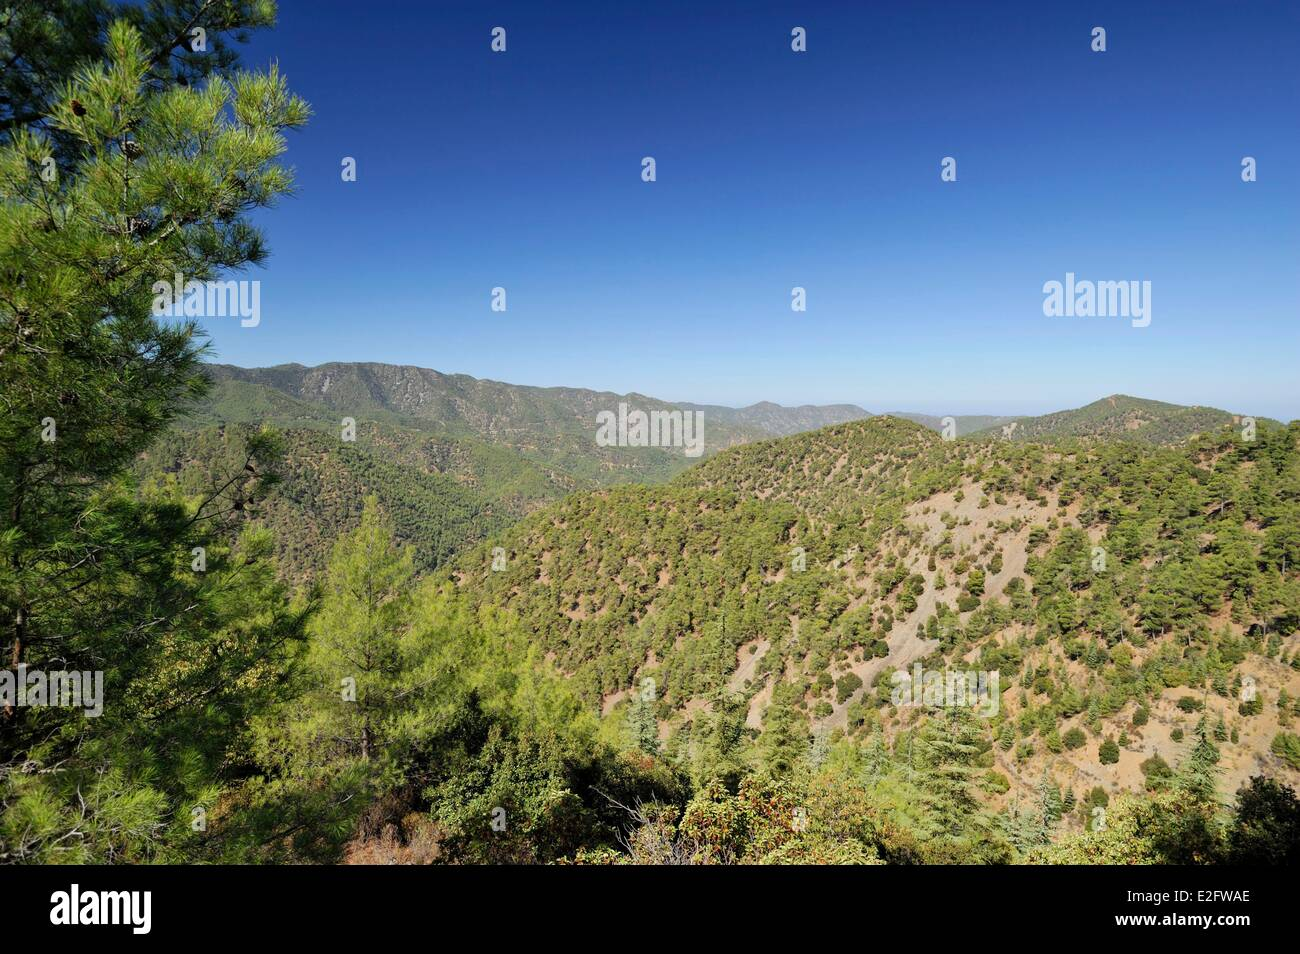 Cyprus Nicosia District Tsakistra overlooking the valley mountains and greenery - Stock Image